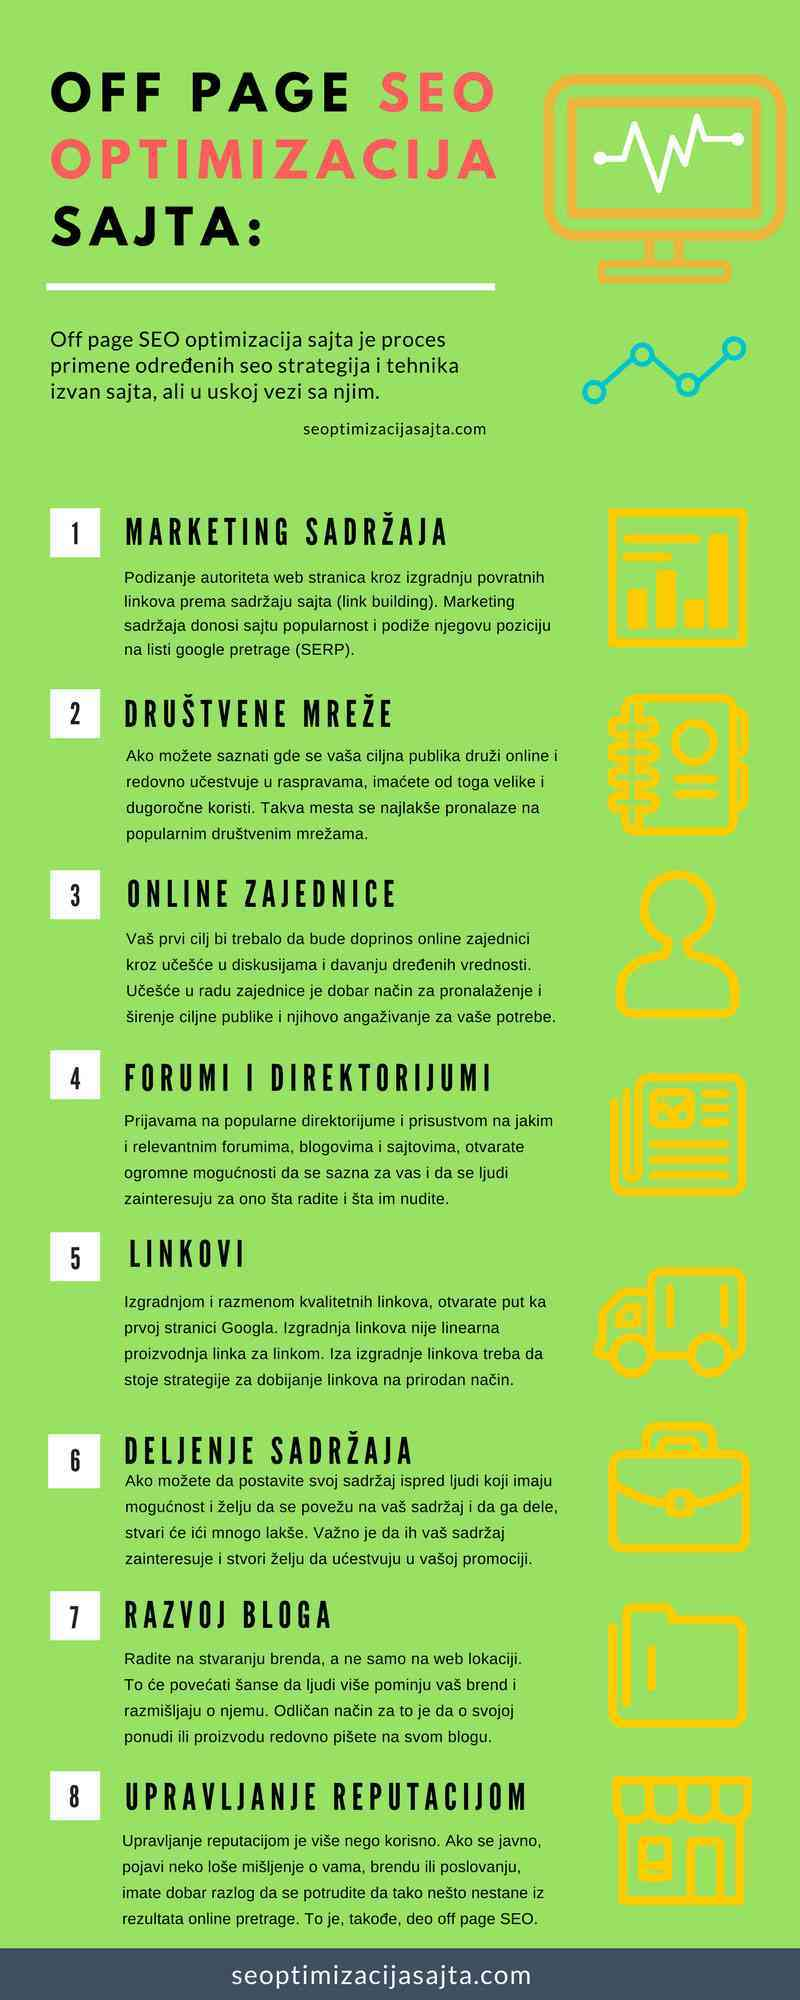 off page seo optimizacija sajta-infografika